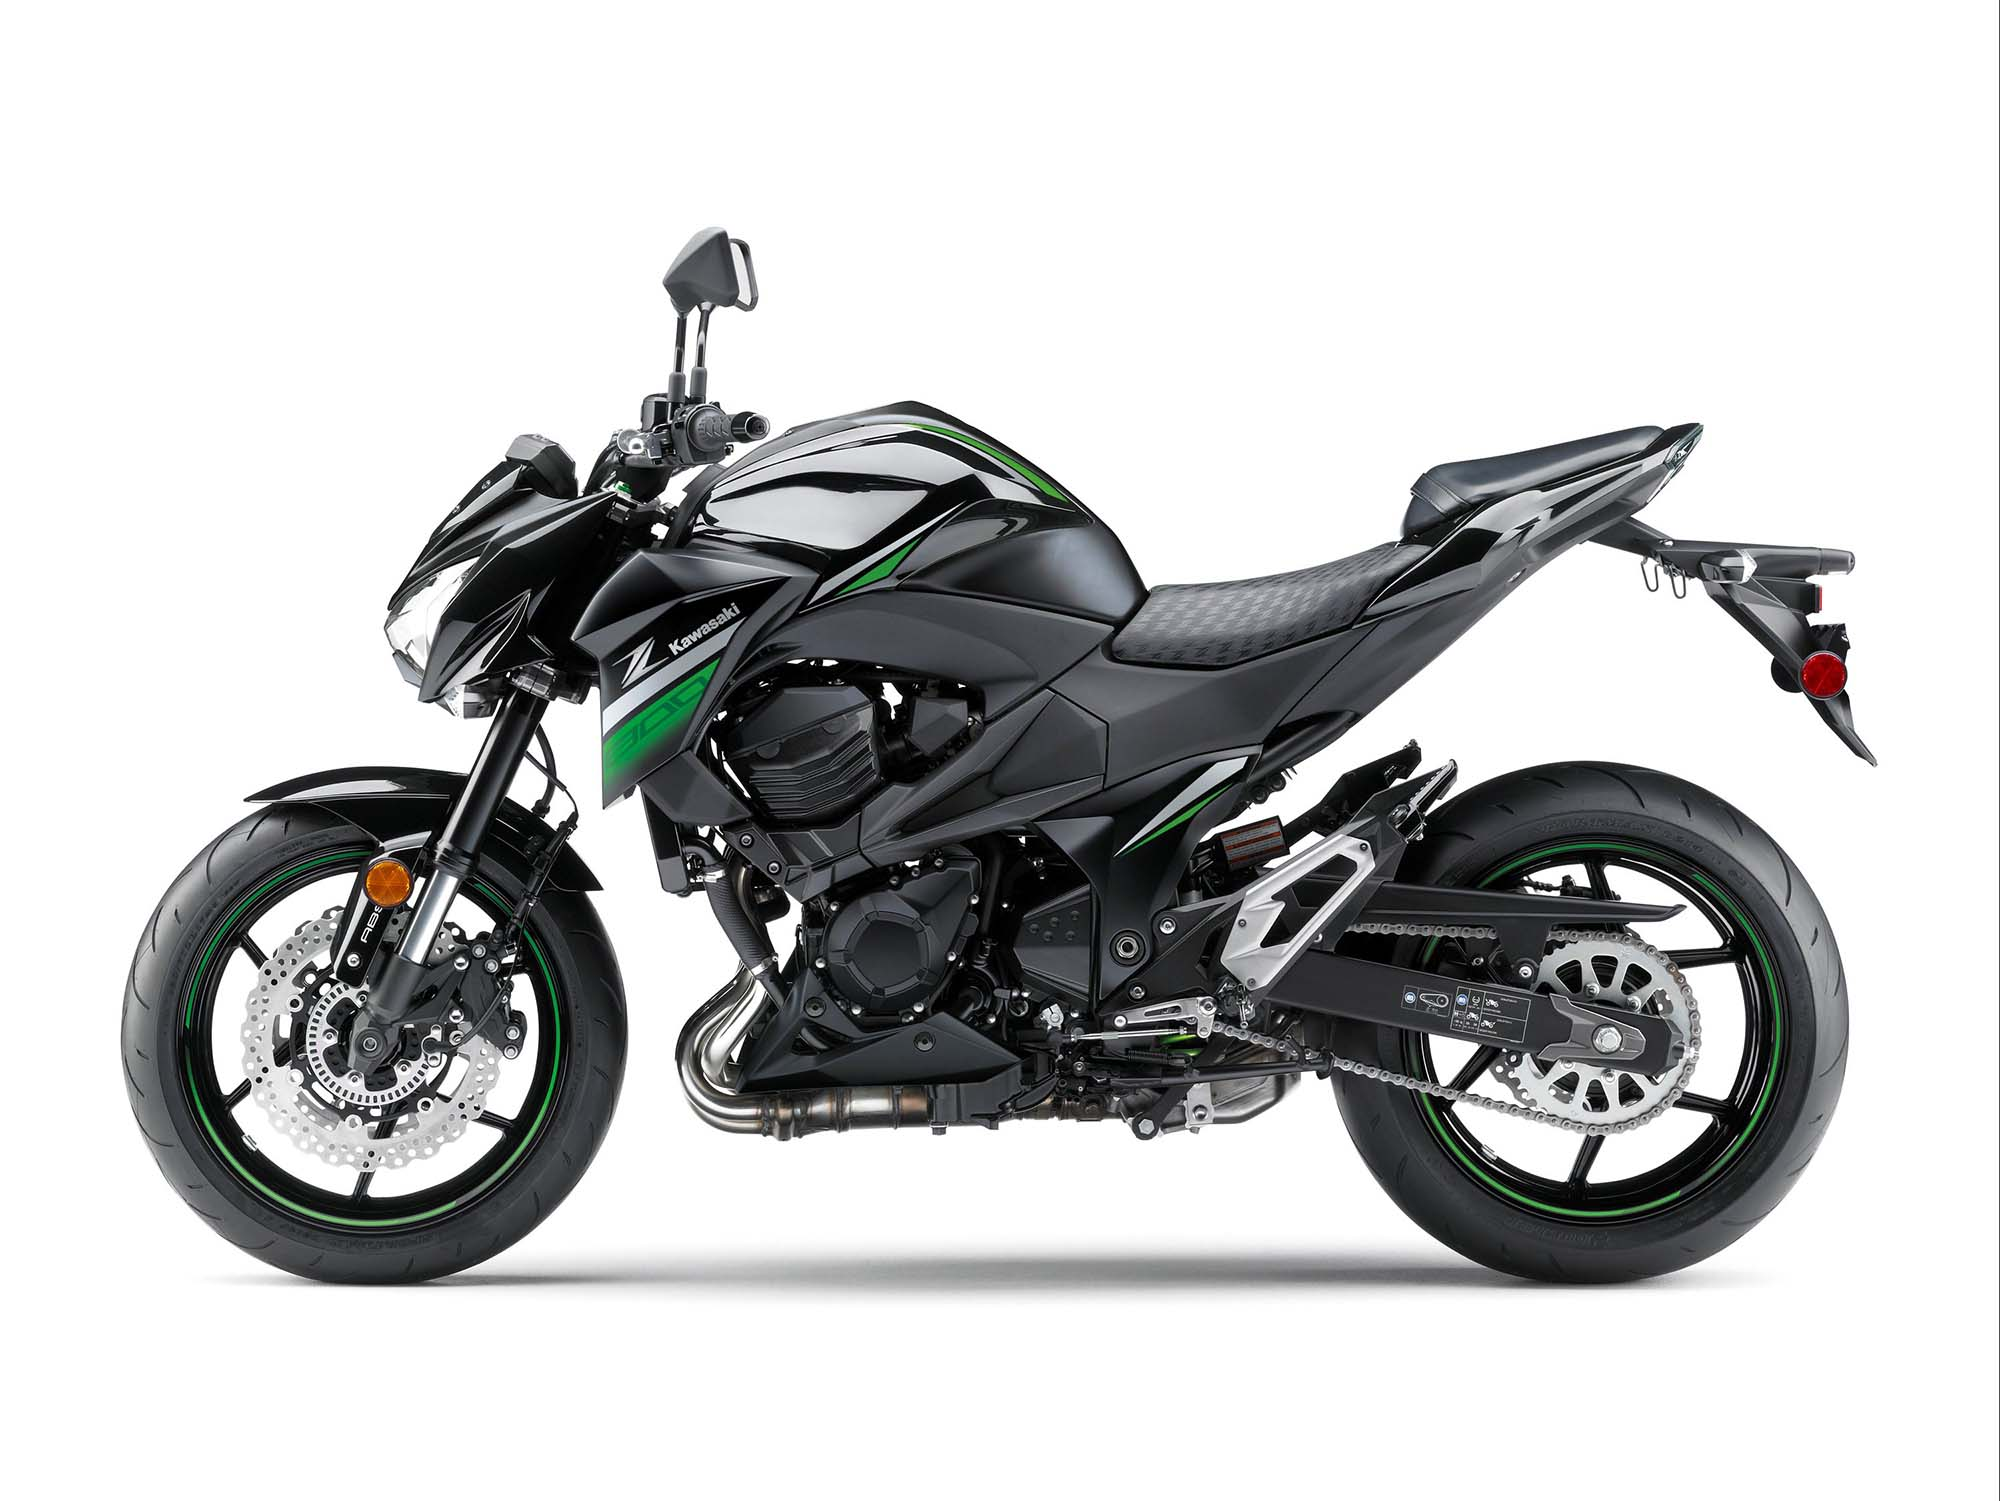 2016 kawasaki z800 abs coming to 49 states of the usa asphalt rubber. Black Bedroom Furniture Sets. Home Design Ideas